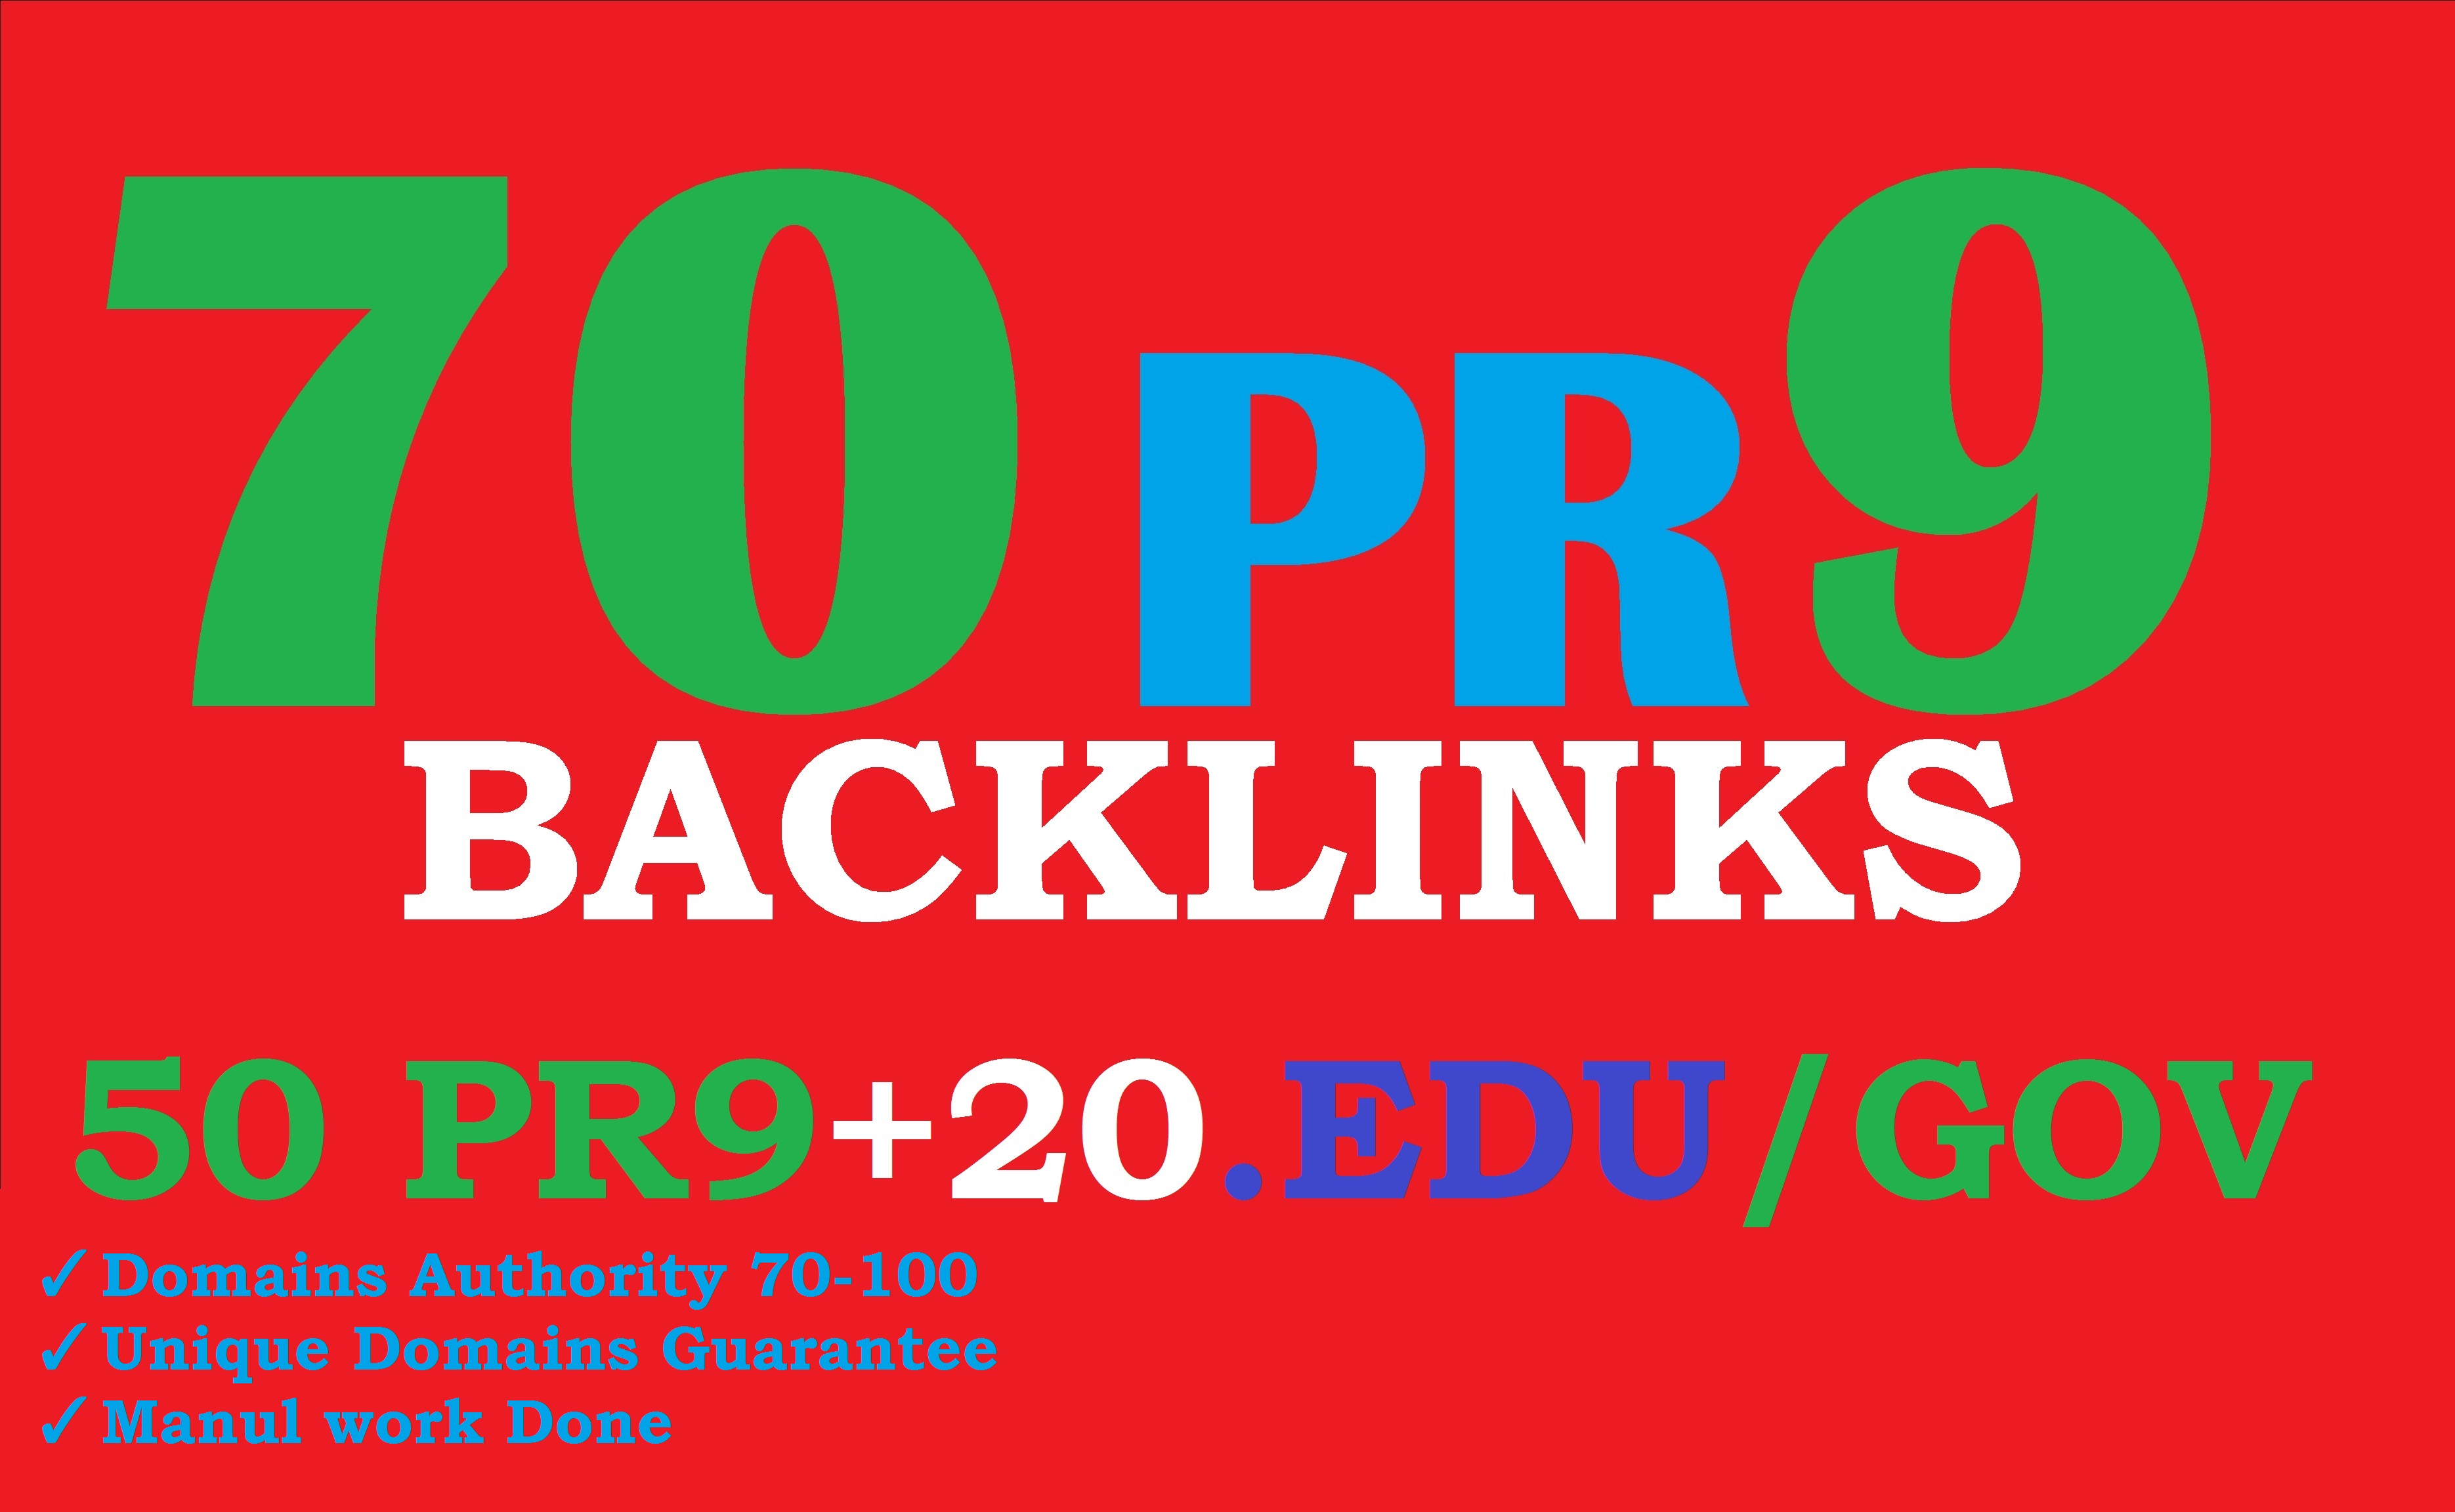 I will create 70 backlinks 50 PR9+20 EDU/GOV Manual & Safe SEO For Boost Your Google Ranking